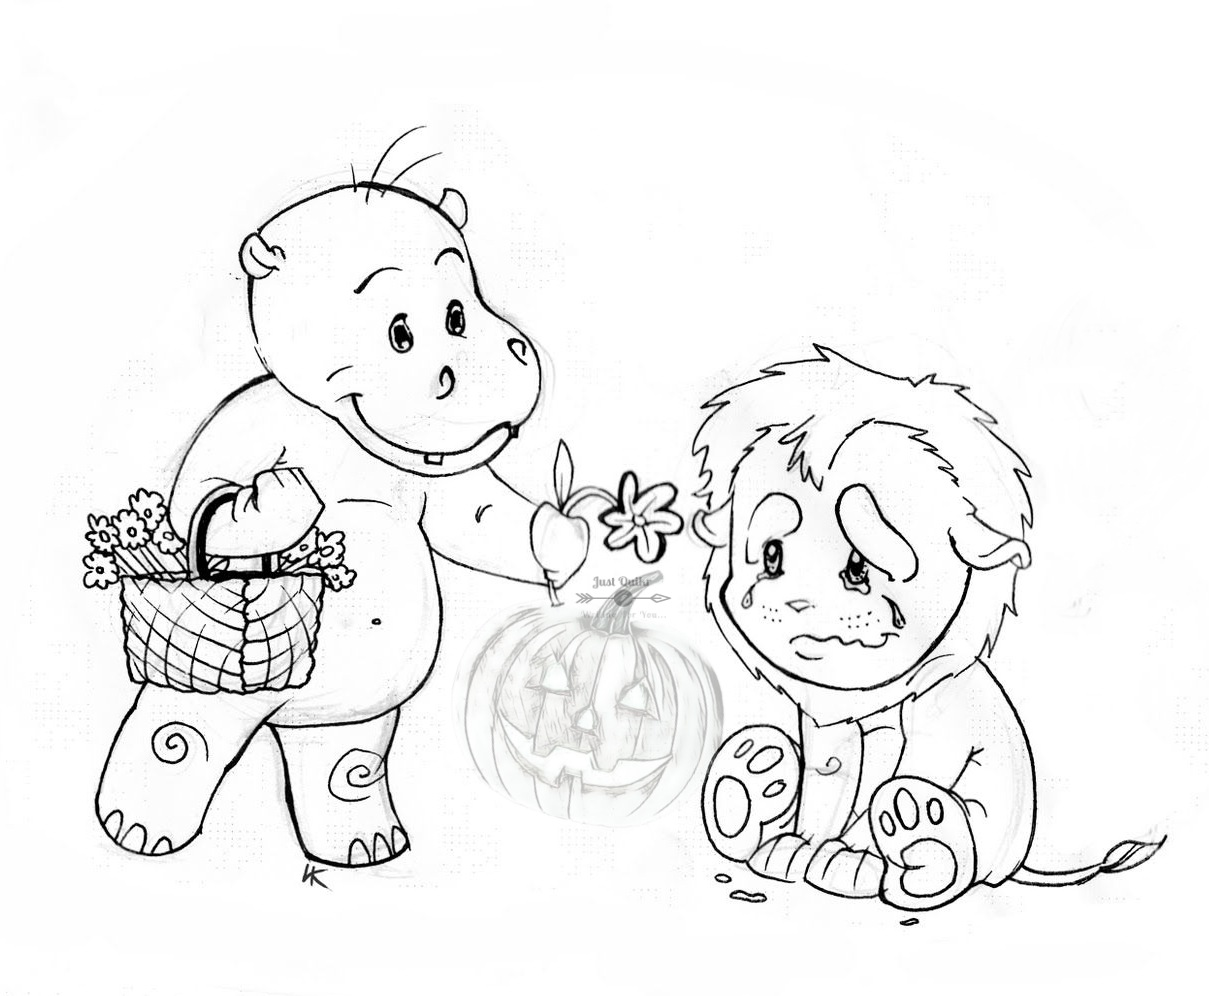 Halloween Day Coloring Pages Drawings for World Kindness